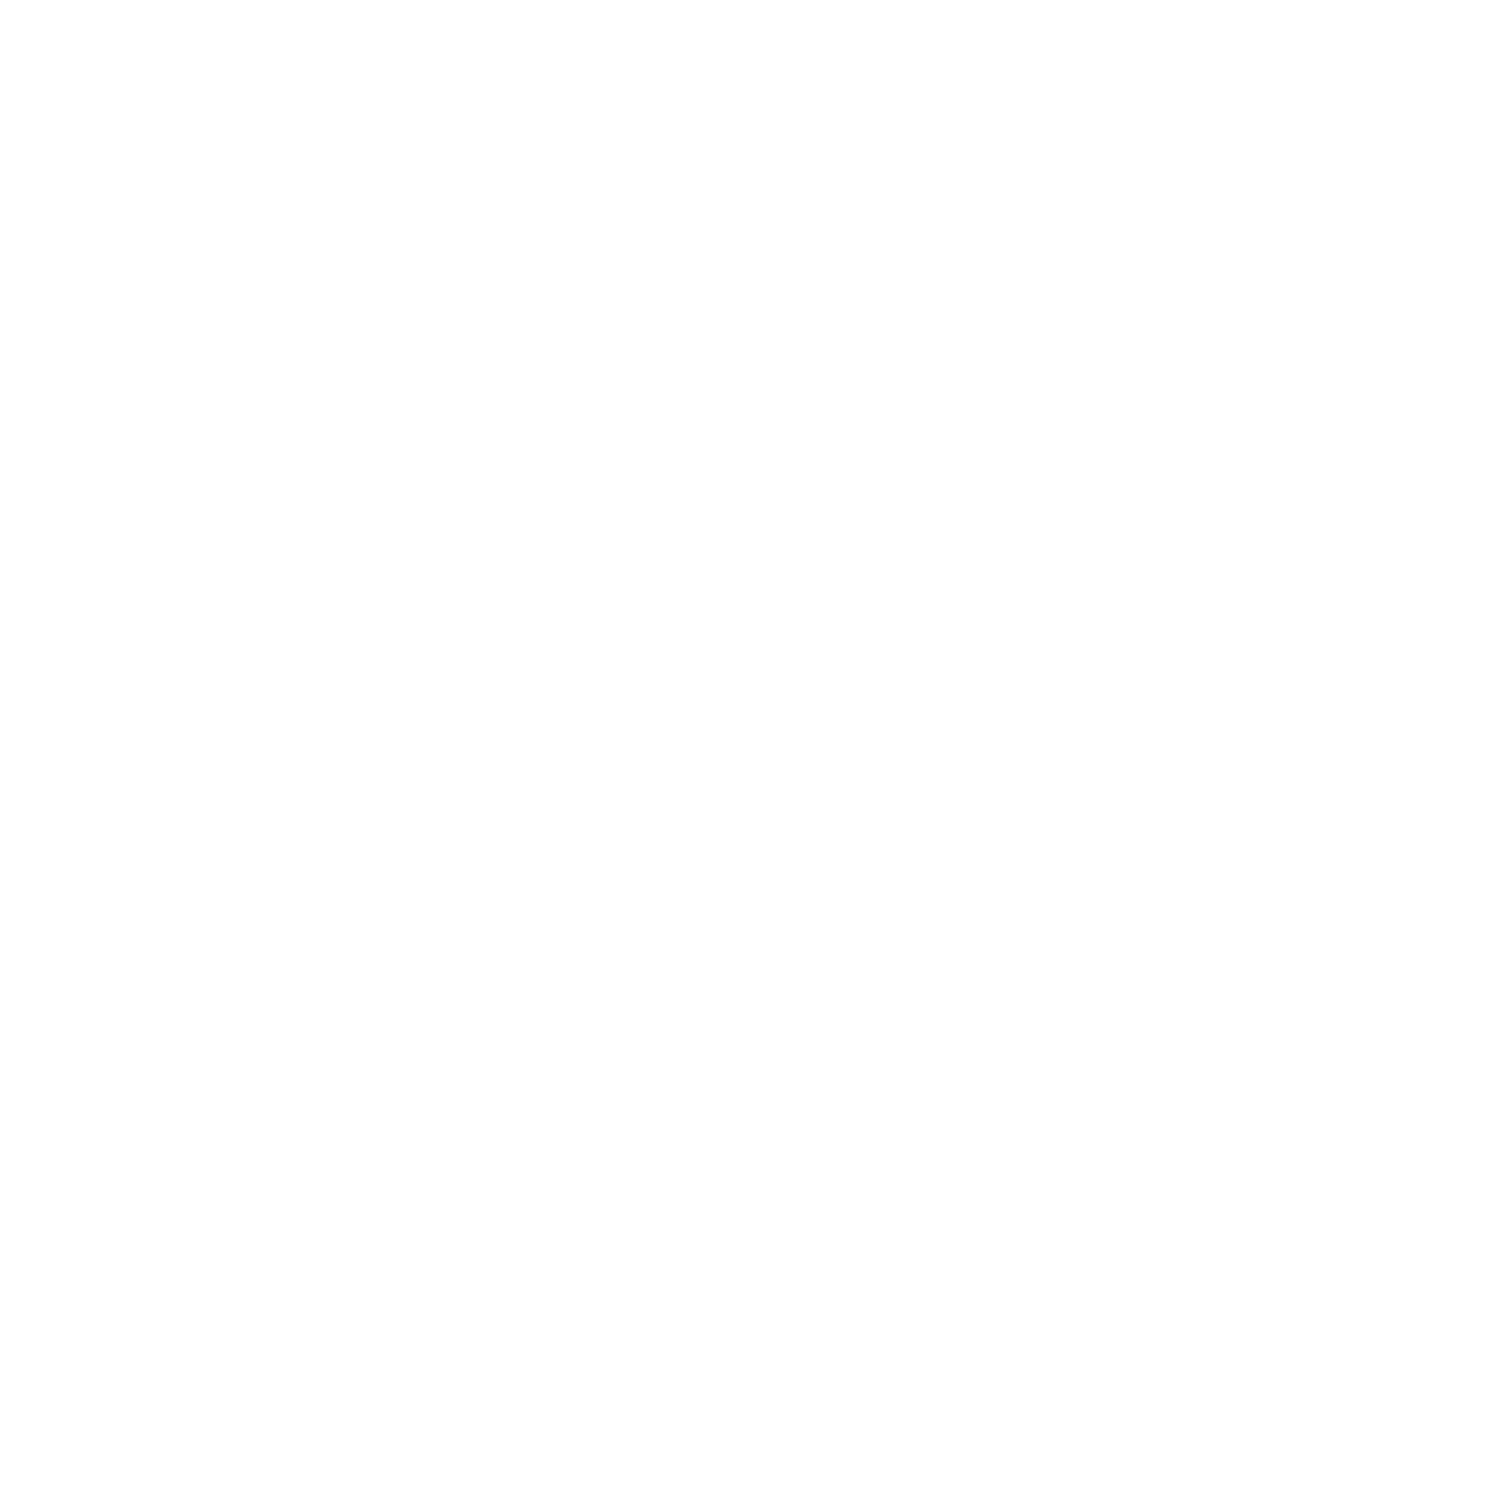 G&D Security